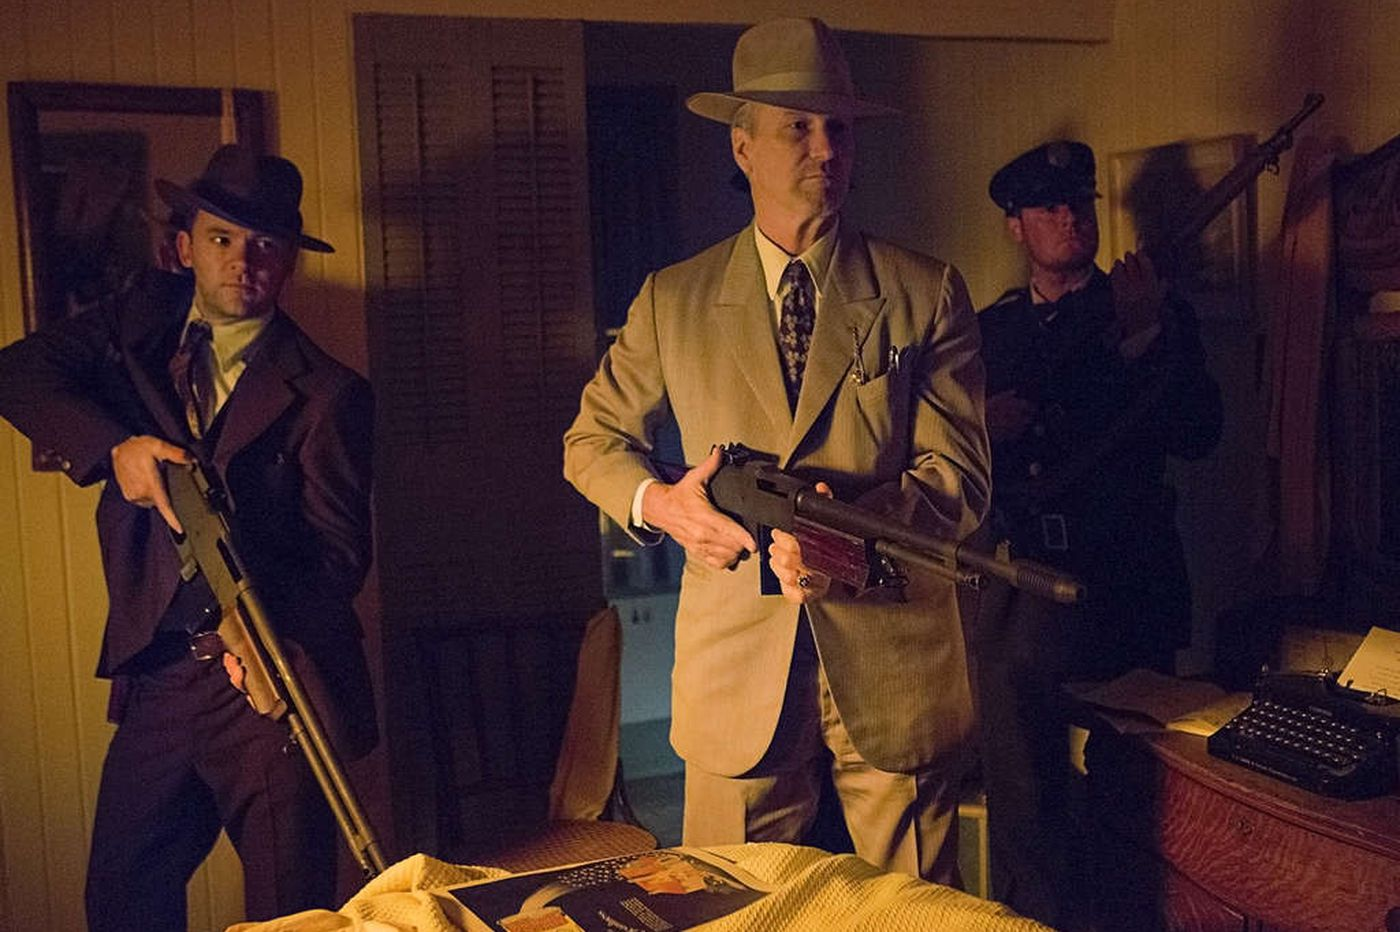 'Bonnie & Clyde' goes on a 2-night, 3-network spree